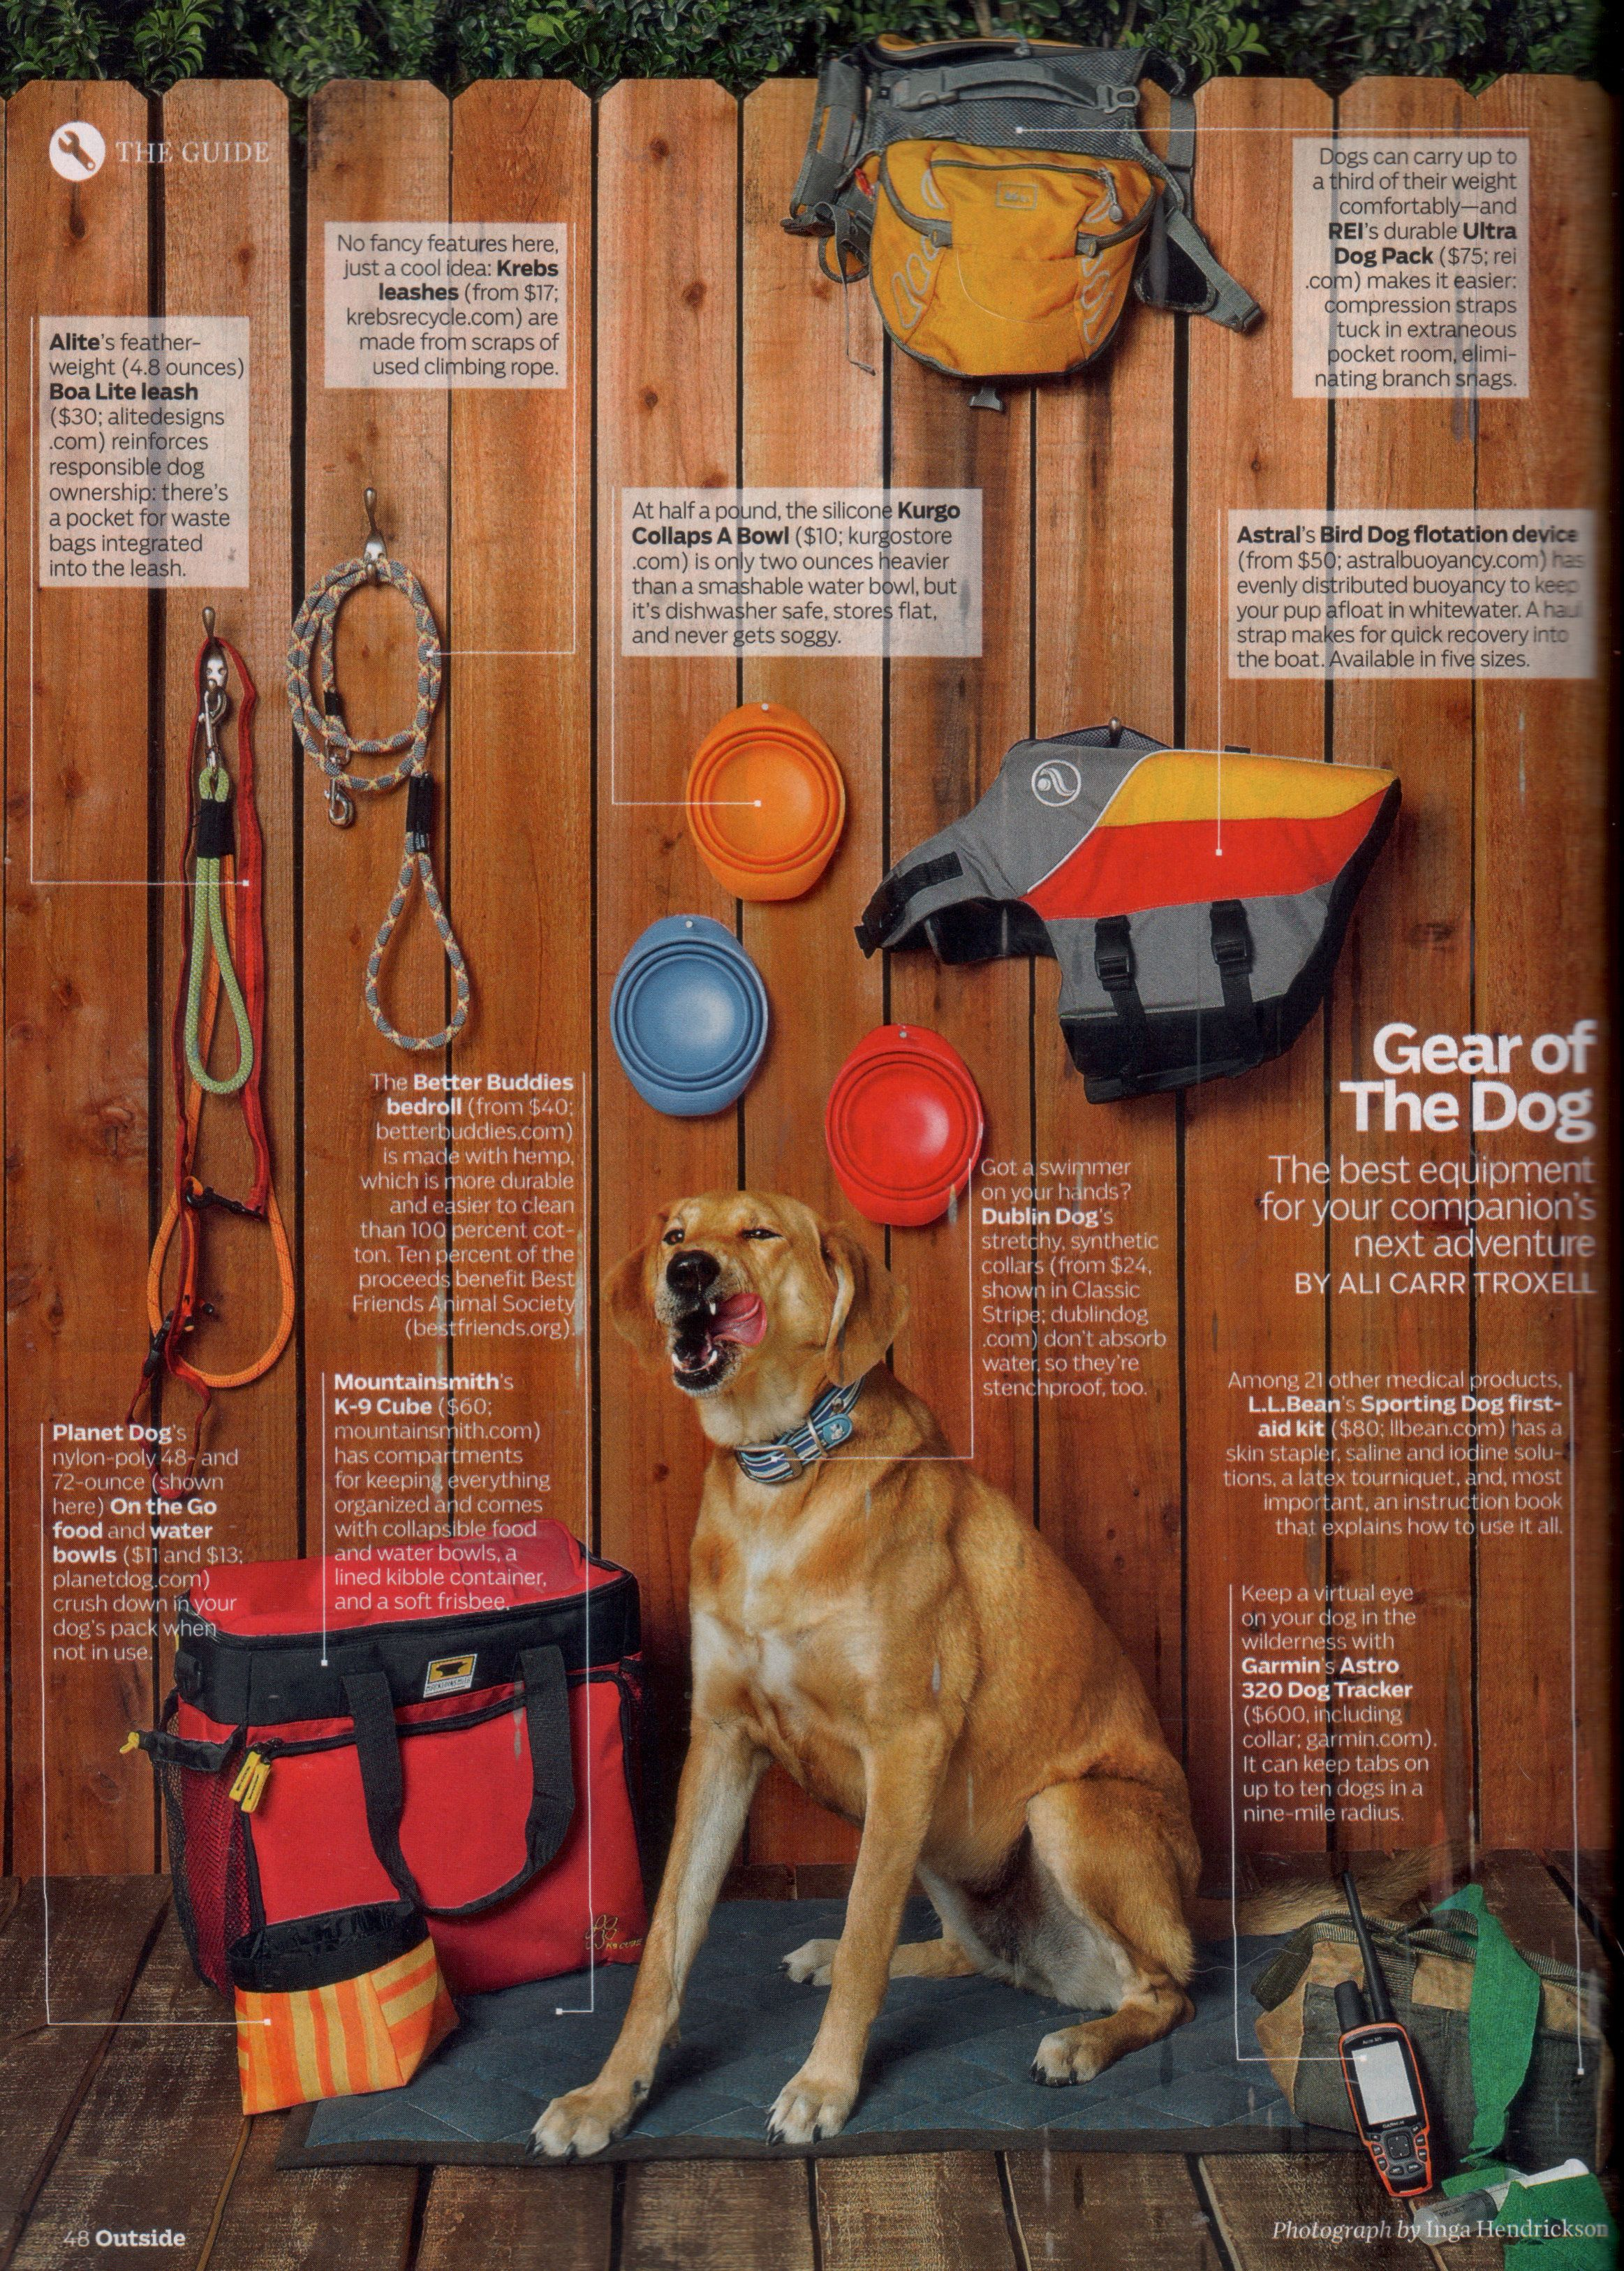 dog gear | Camping with Dogs | Hiking dogs, Dog hiking gear, Outdoor dog